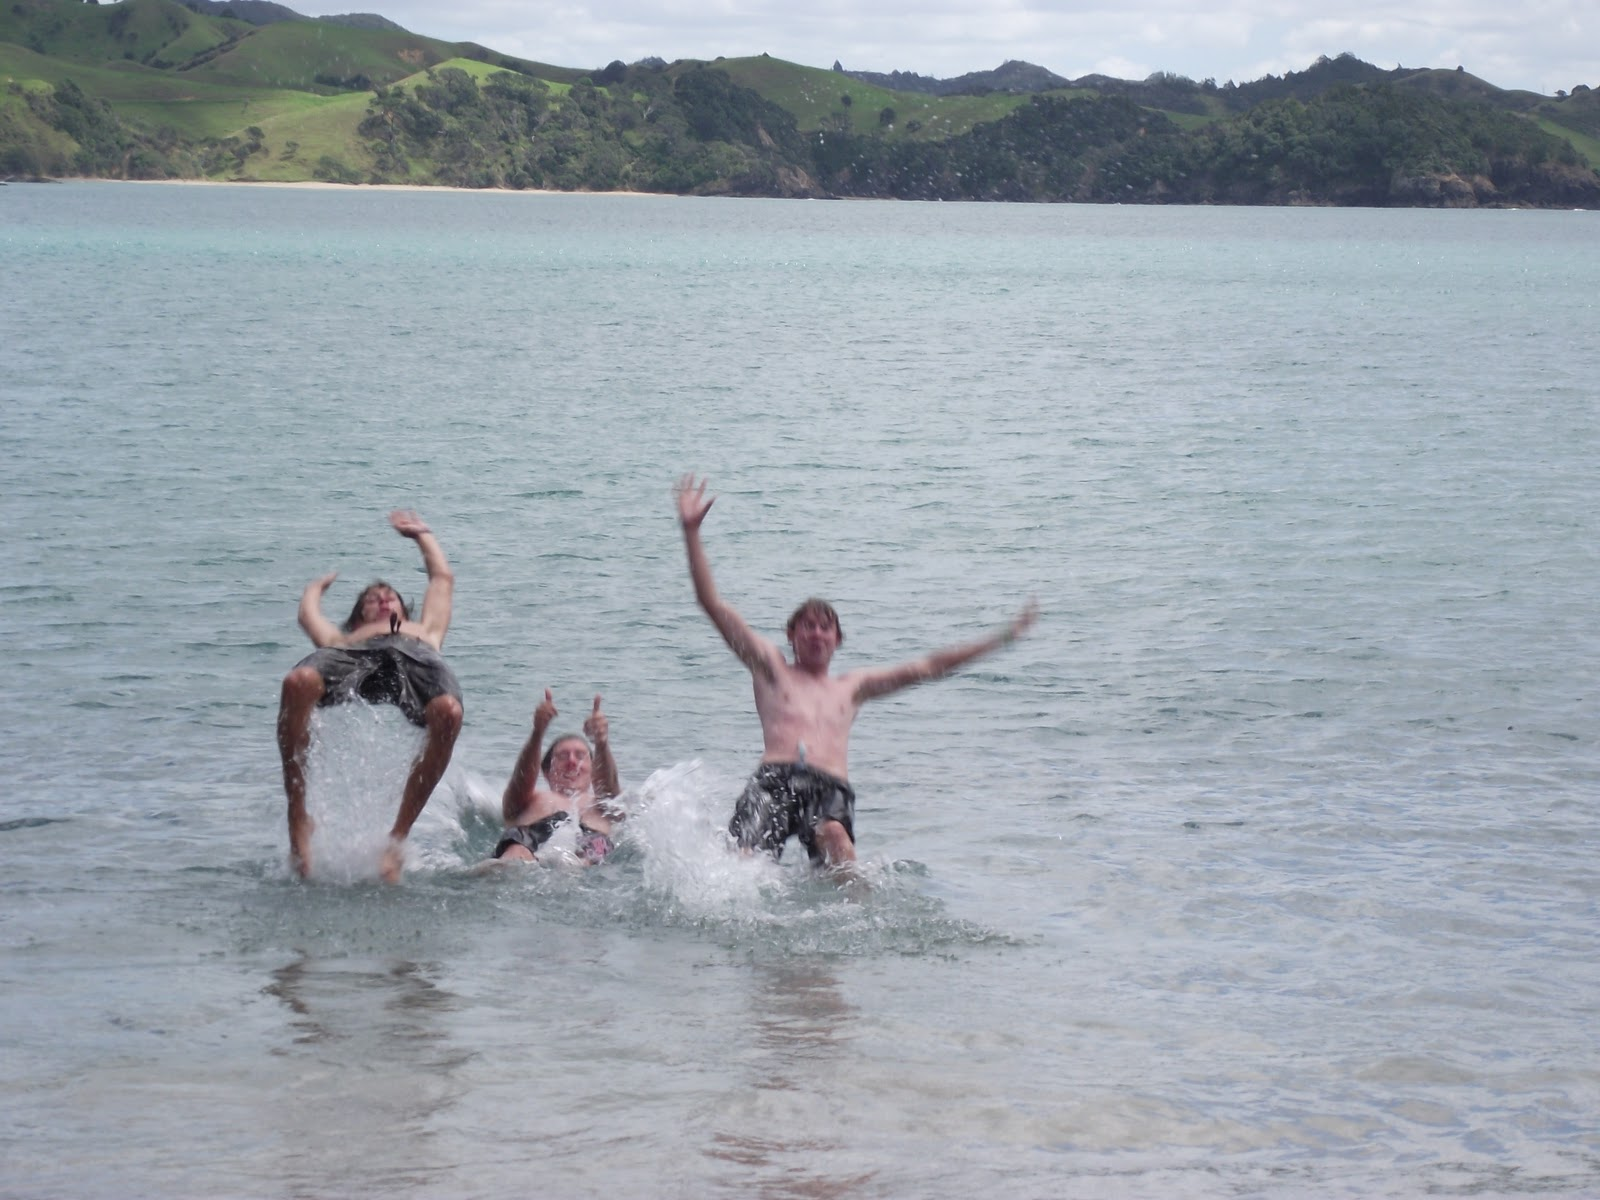 we headed off to paihia at 1430 this afternoon our next stop looking out on the bay of islands we went searching for the cheapest night we could get at a chaggie downunder february 2011 evening